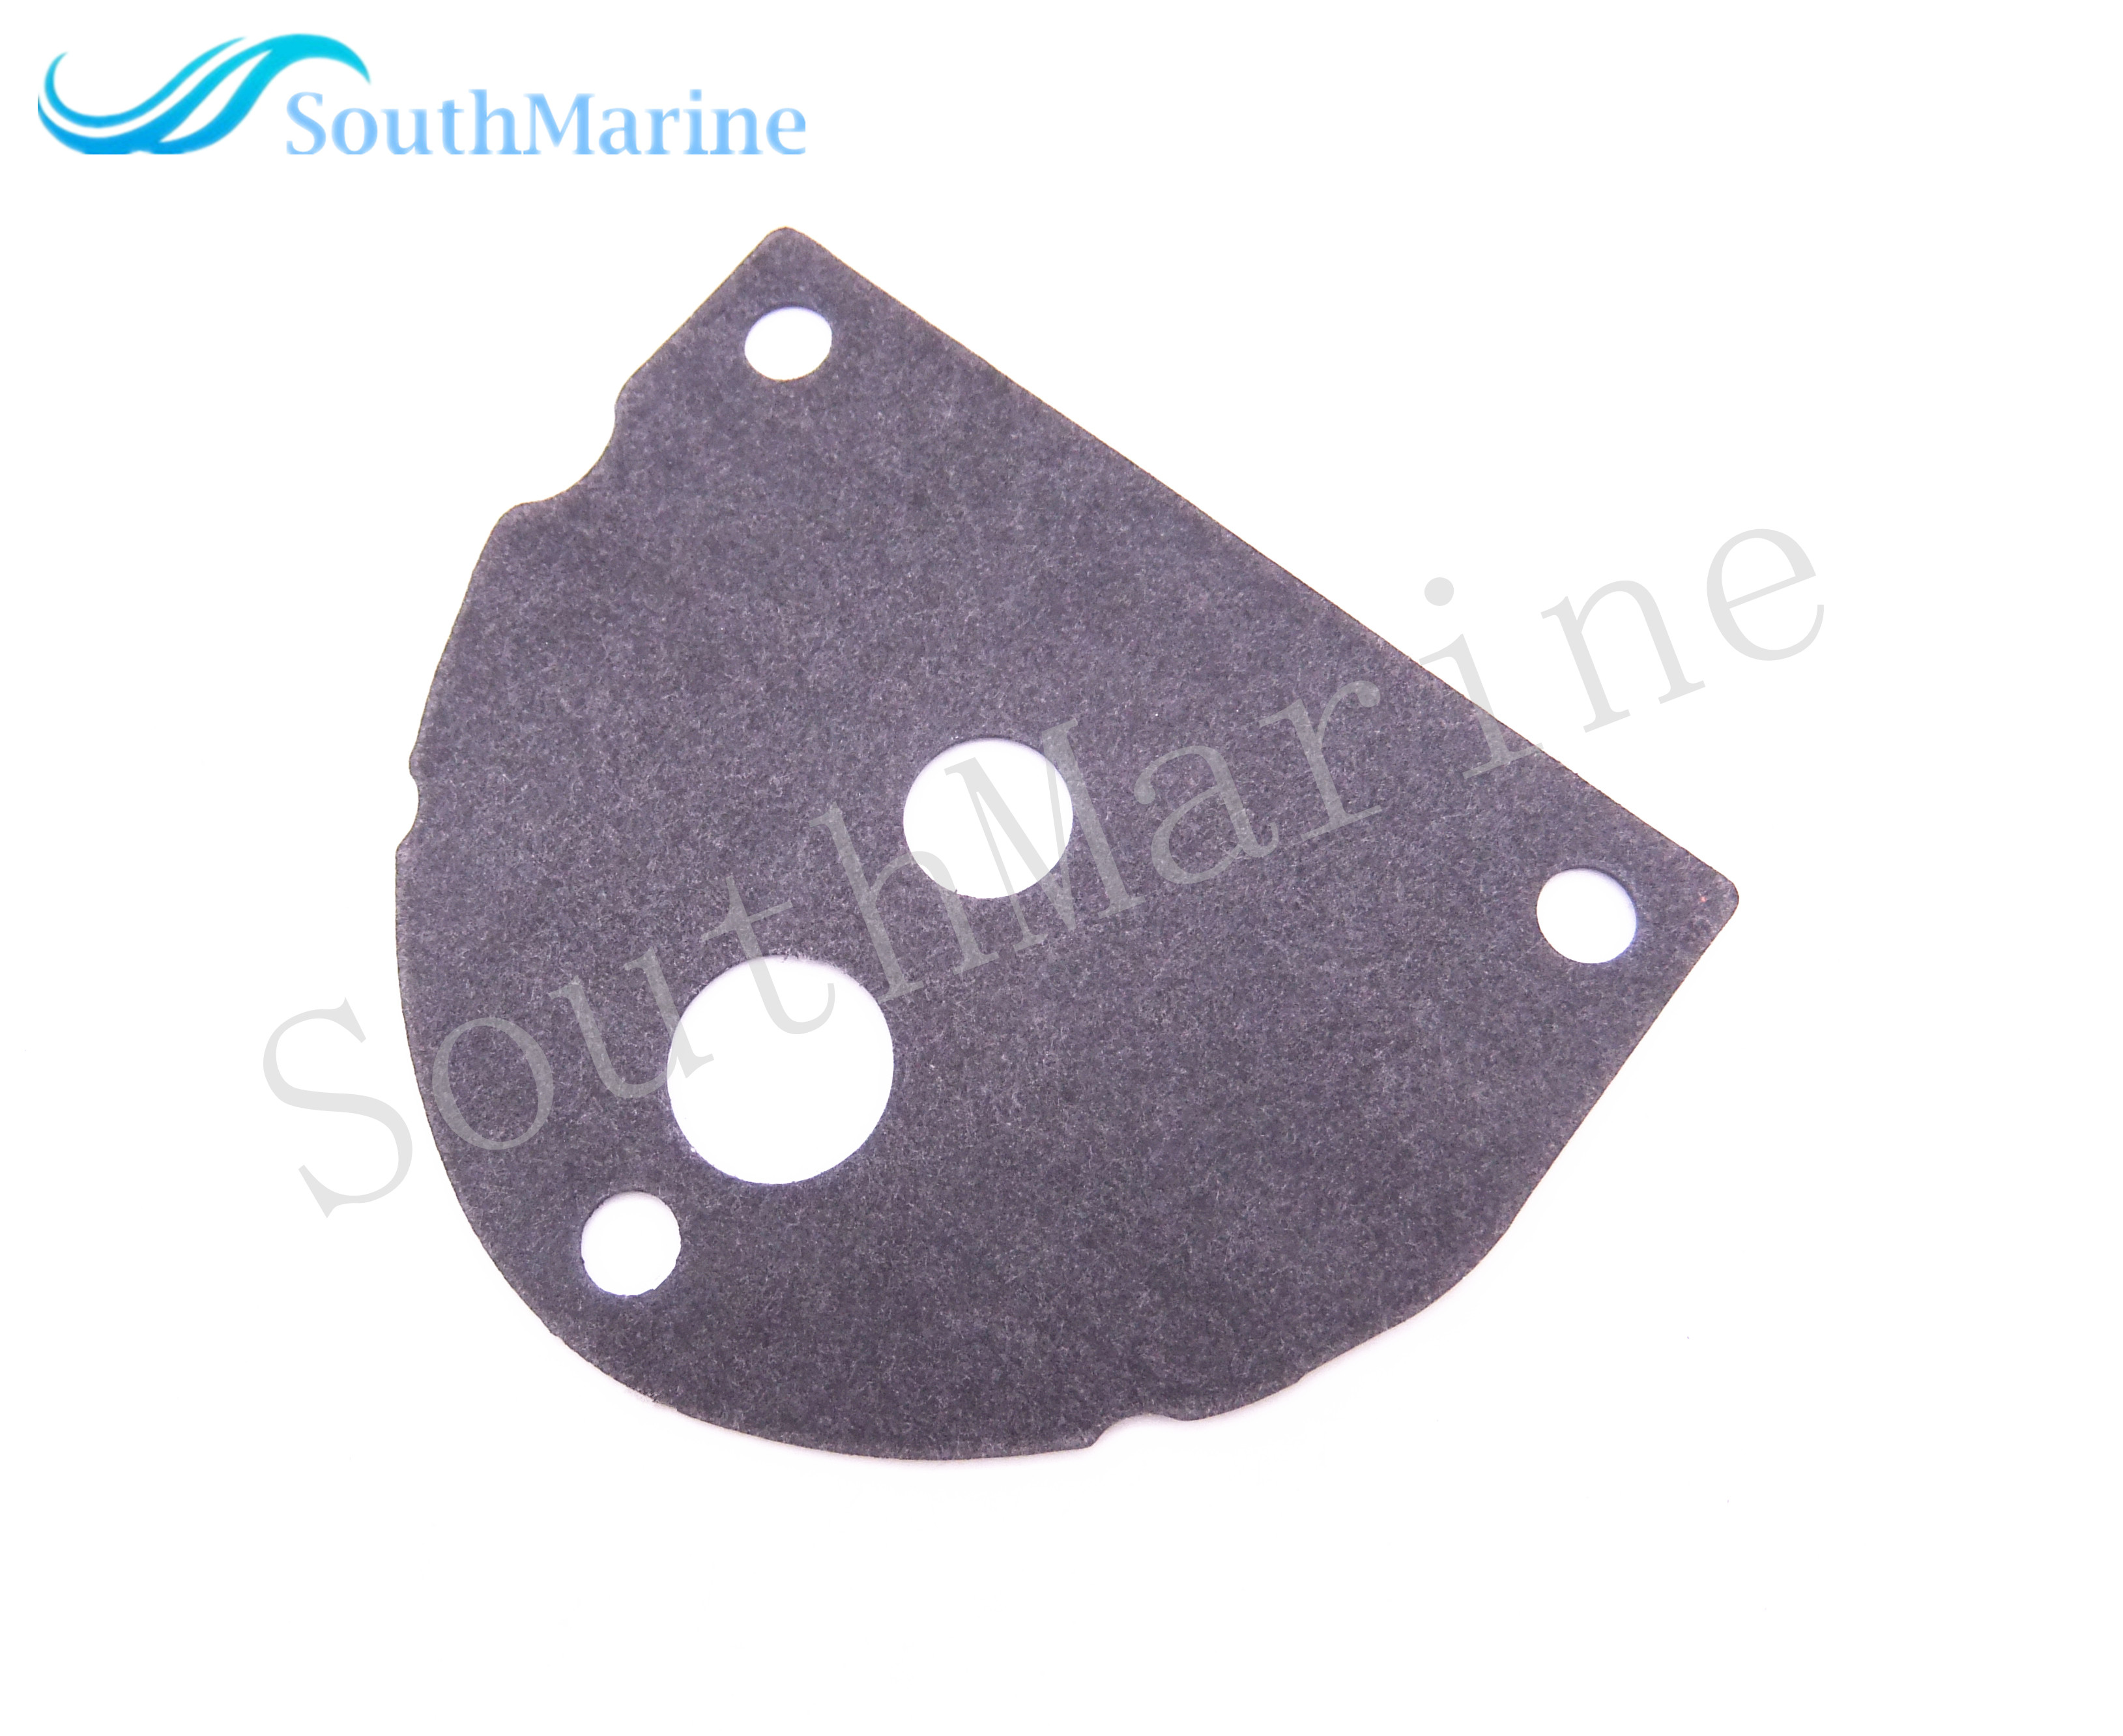 Outboard Engine 63V-45114-A1 Upper Casing Gasket for Yamaha 2-Stroke 9.9hp 15hp Boat Motor Free Shipping